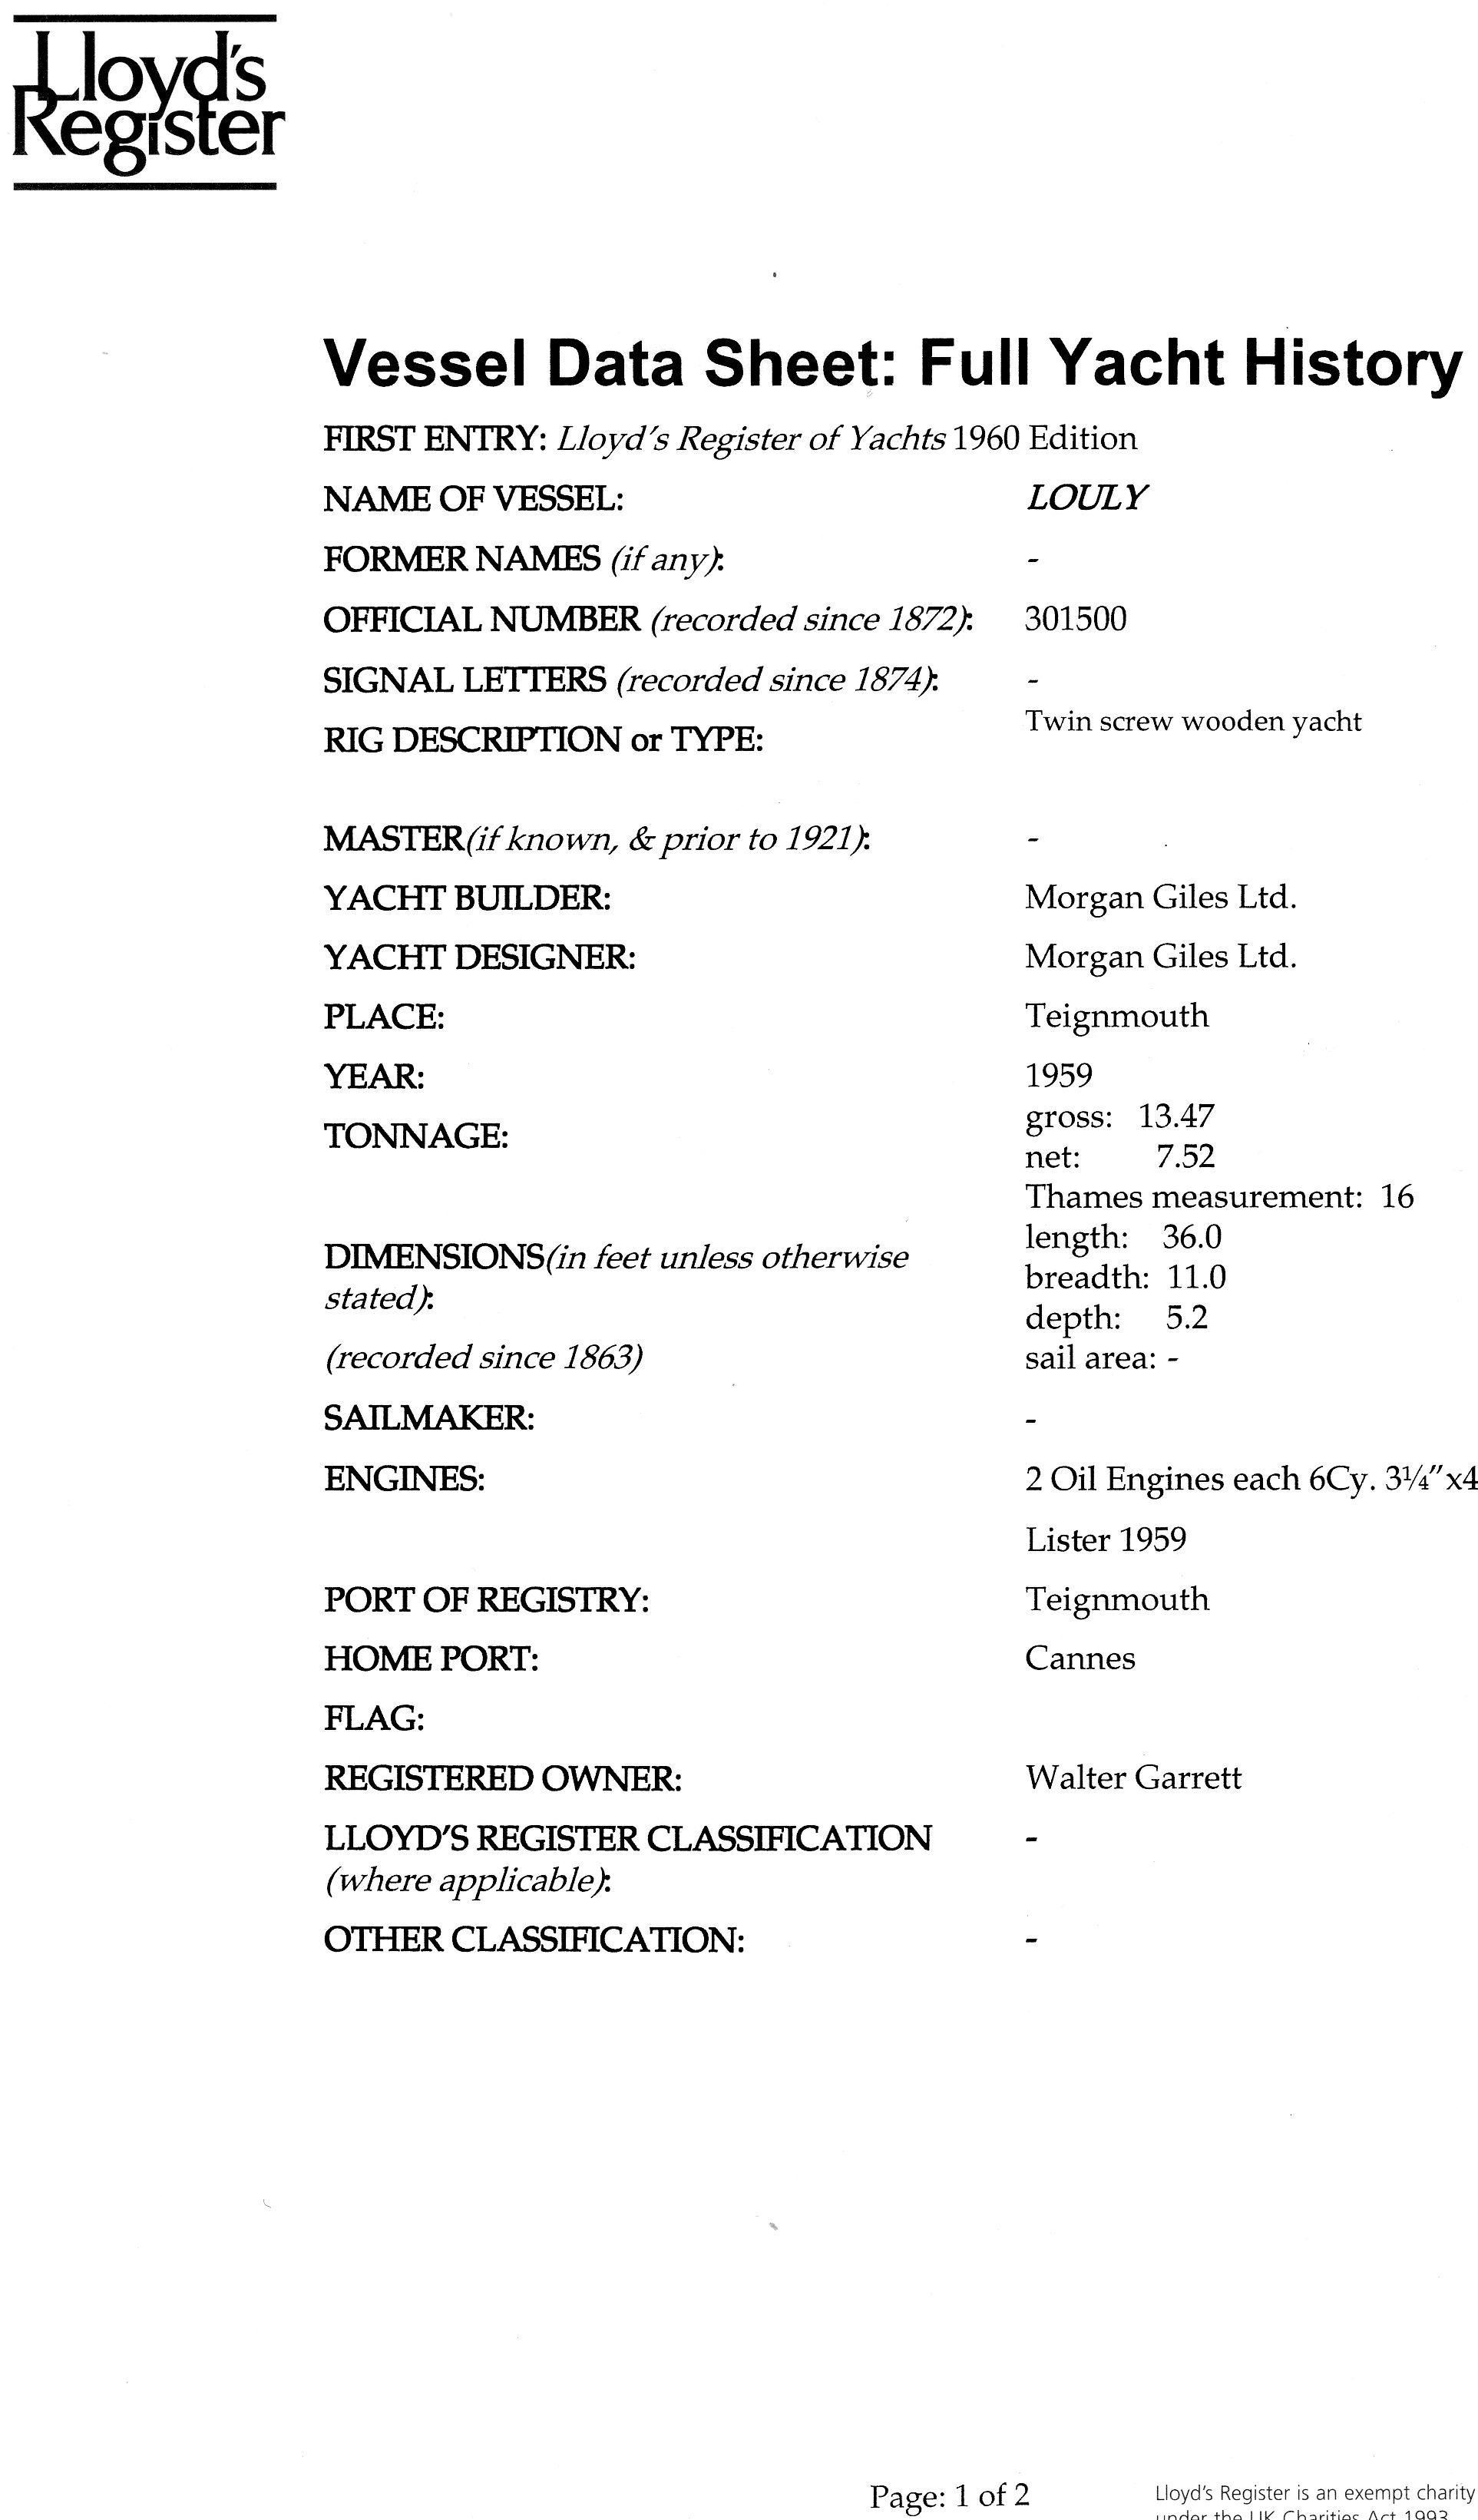 Monaco - Louly - Lloyd's Register Vessel Data Sheet page 1